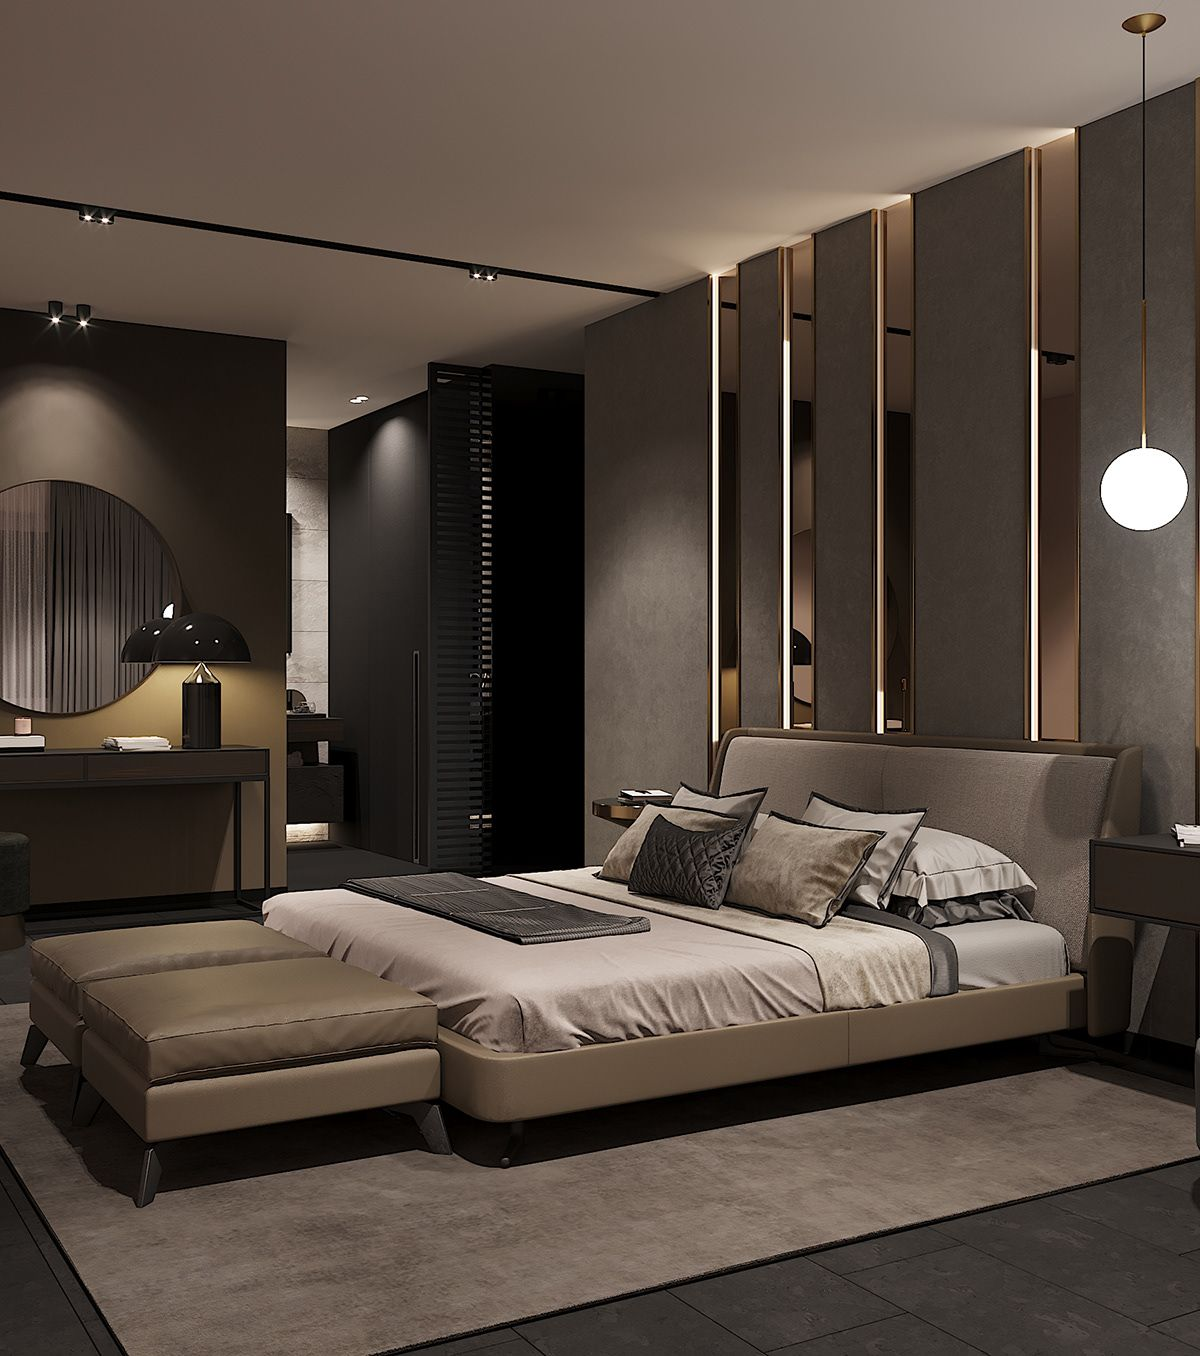 21 Master Bedroom Interior Designs Decorating Ideas: Https://www.behance.net/gallery/72805713/Bedroom-in